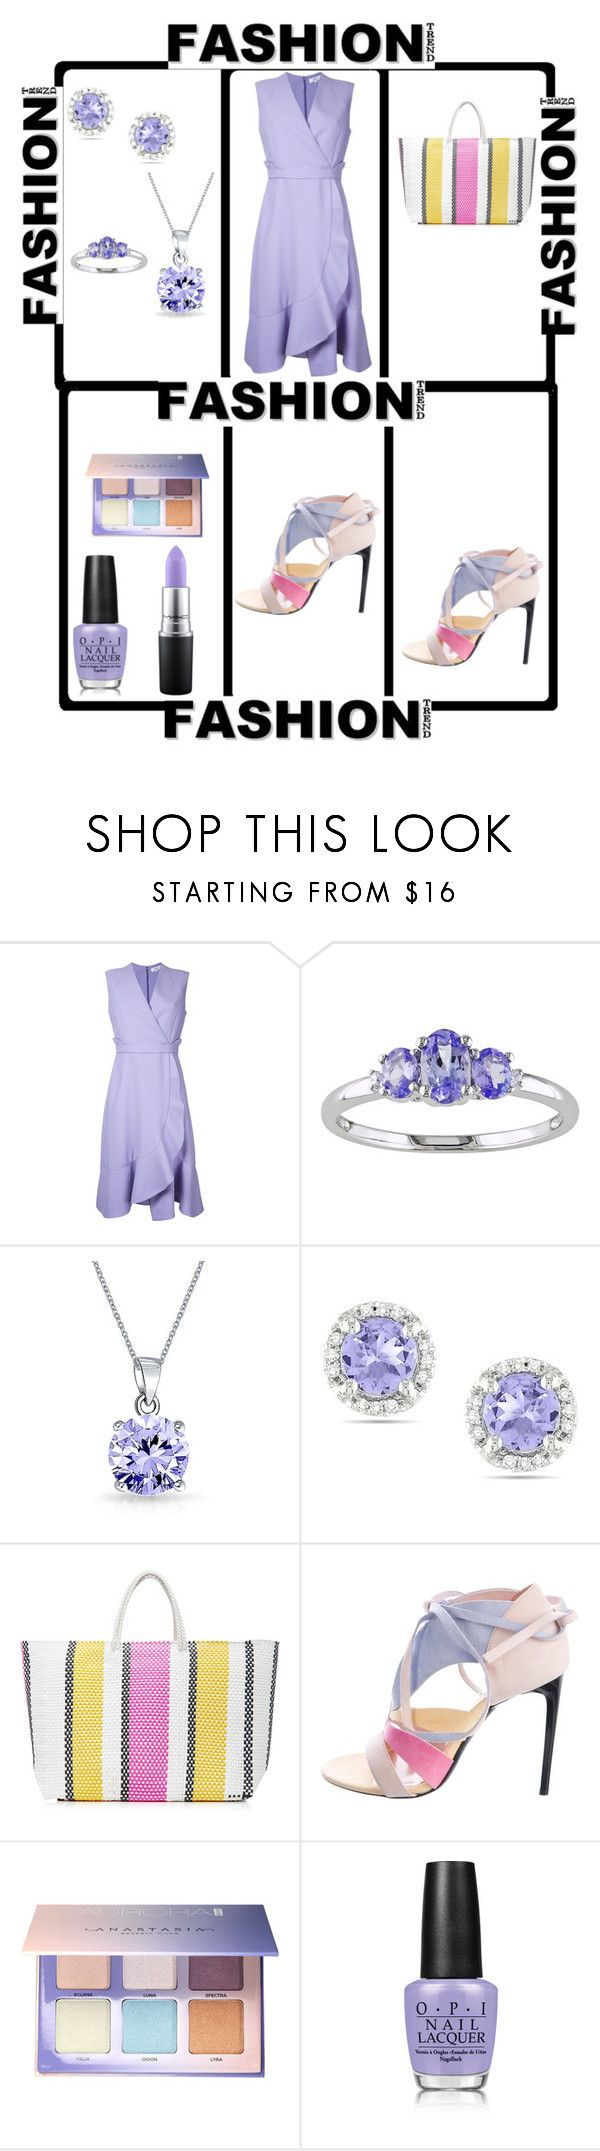 Out by theresagray31 on Polyvore featuring Carven, Roland Mouret, TRUSS, Ice, Bling Jewelry, Anastasia Beverly Hills, MAC Cosmetics and OPI